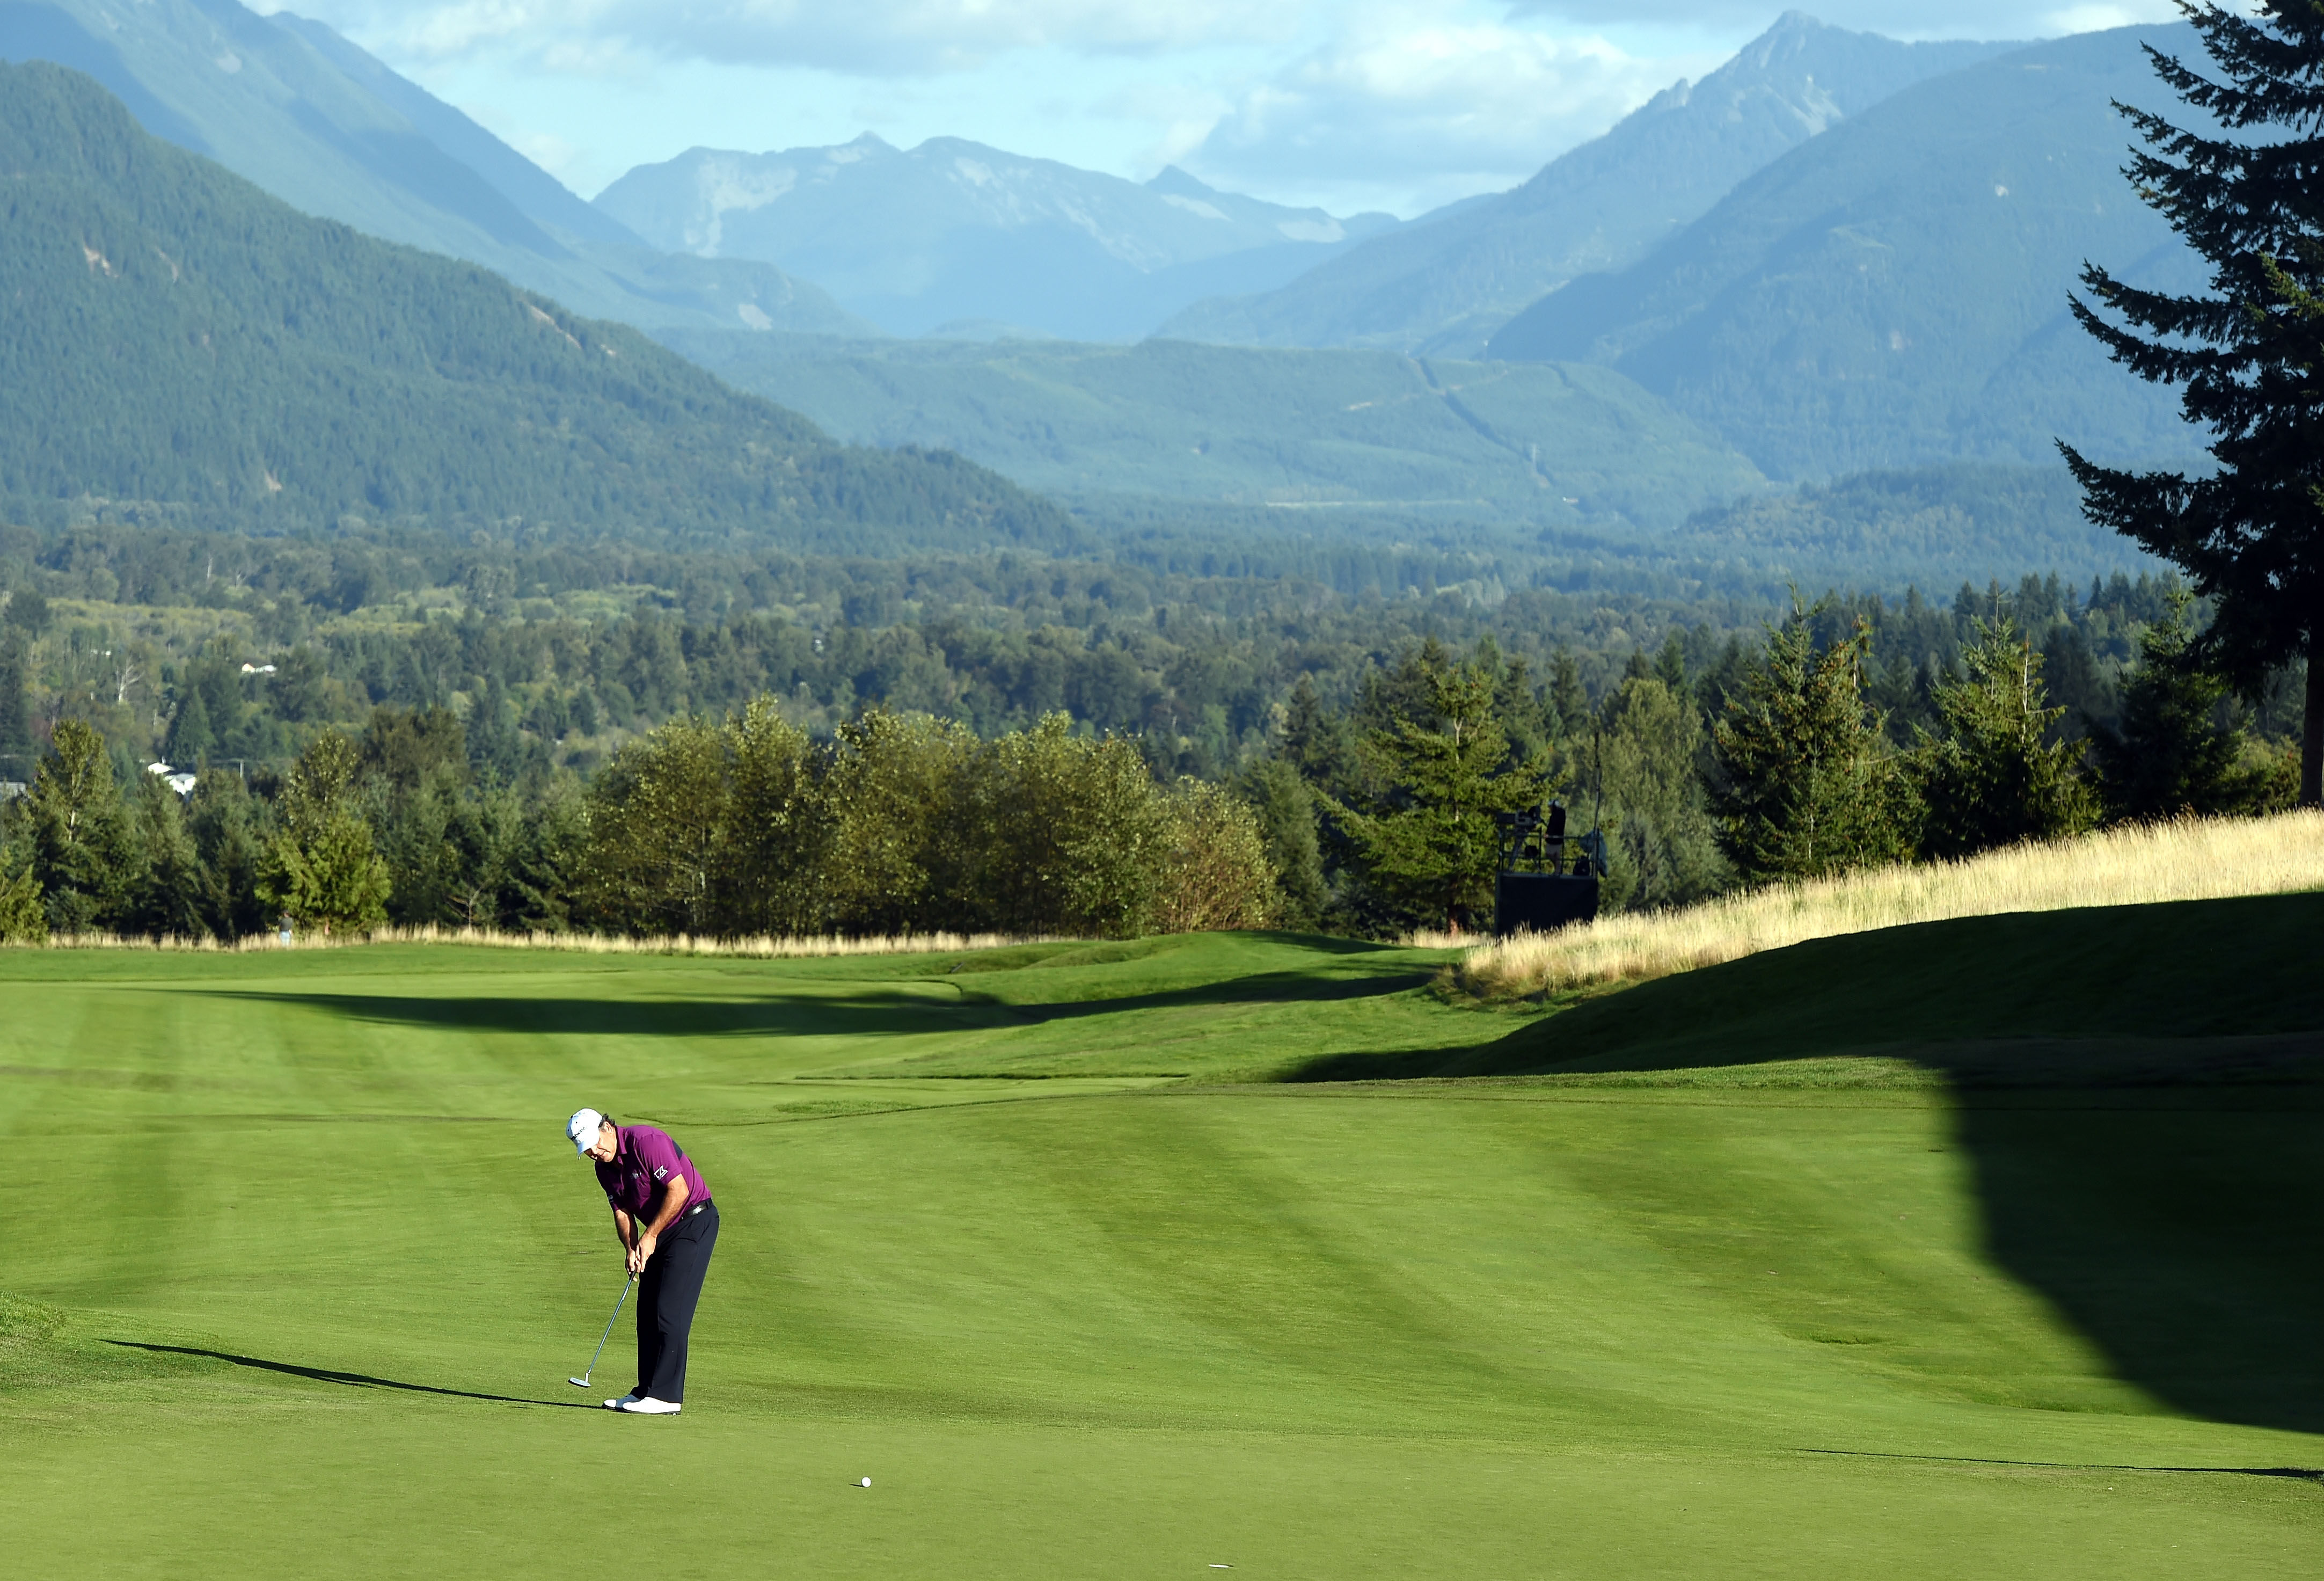 David Frost putts on 18 during the Boeing Classic at Snoqualmie, Washington (Photo: Steve Dykes/Getty Images)